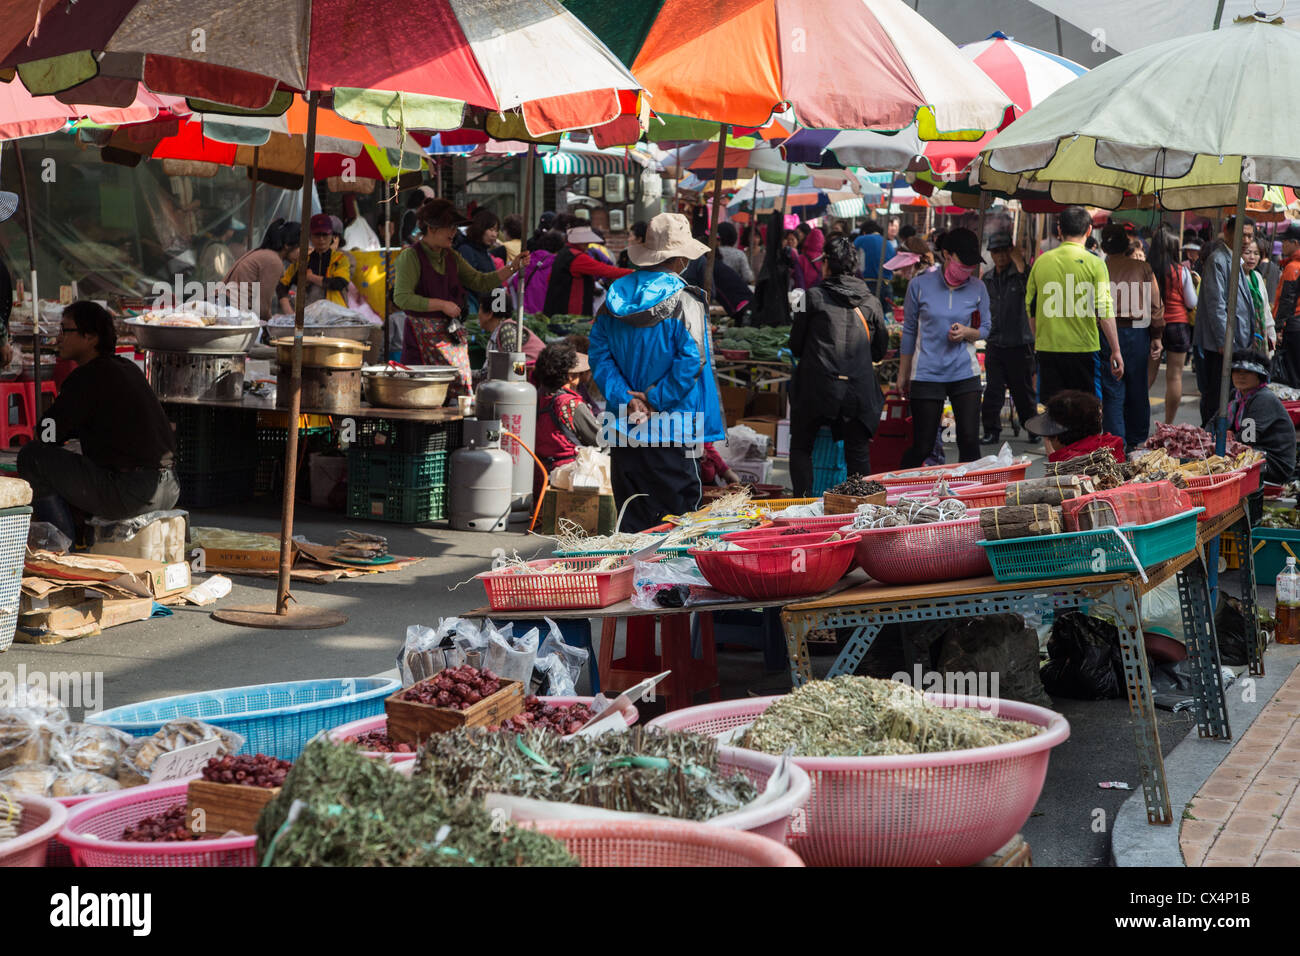 Colorful umbrellas and street vendors in the open air ...